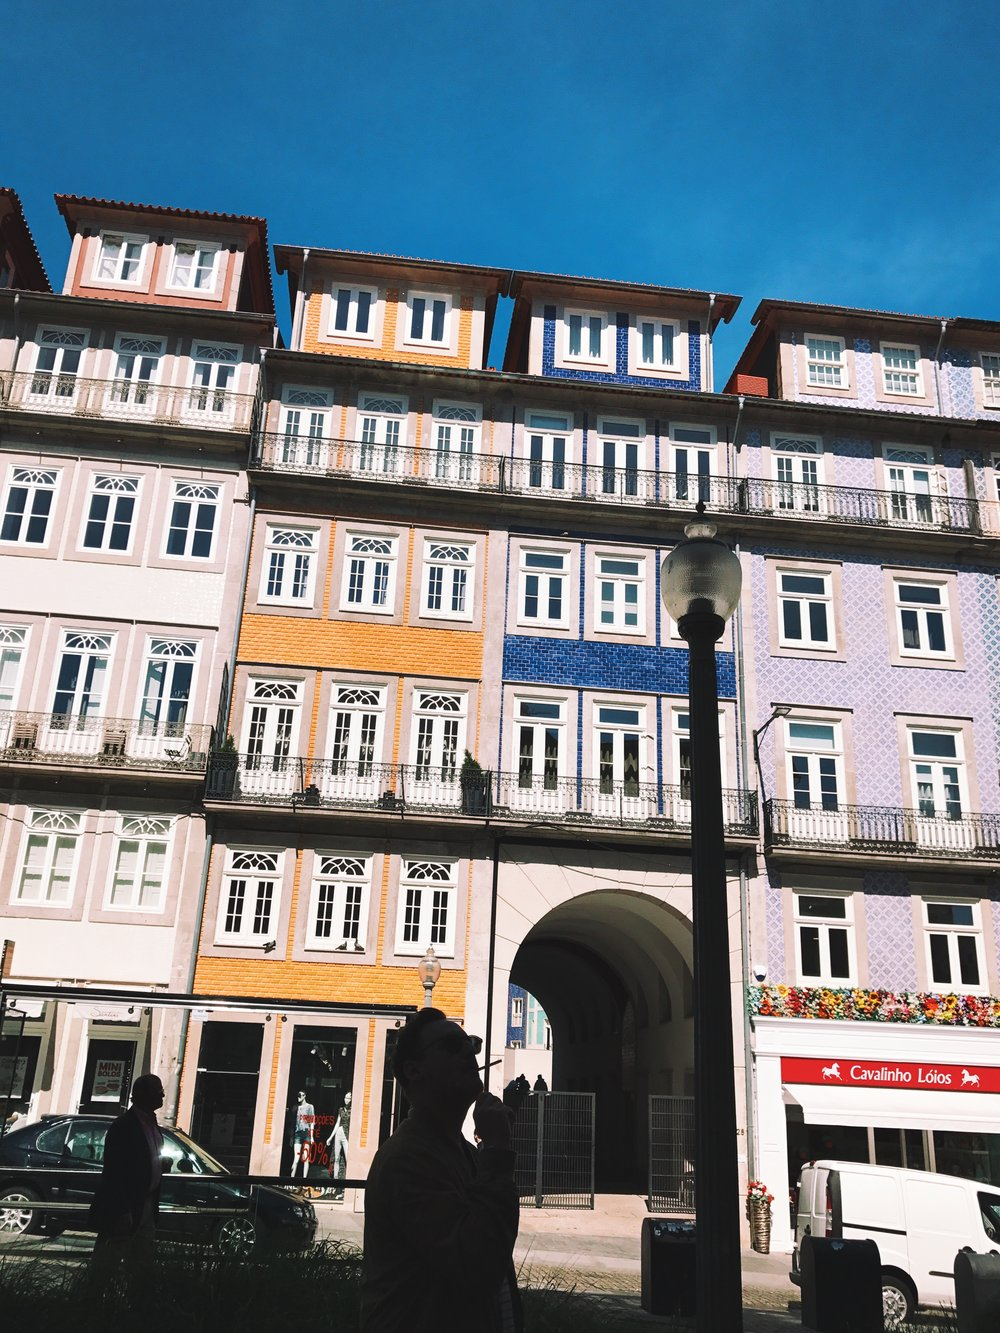 Buildings on R. Trindade Coelho in Porto